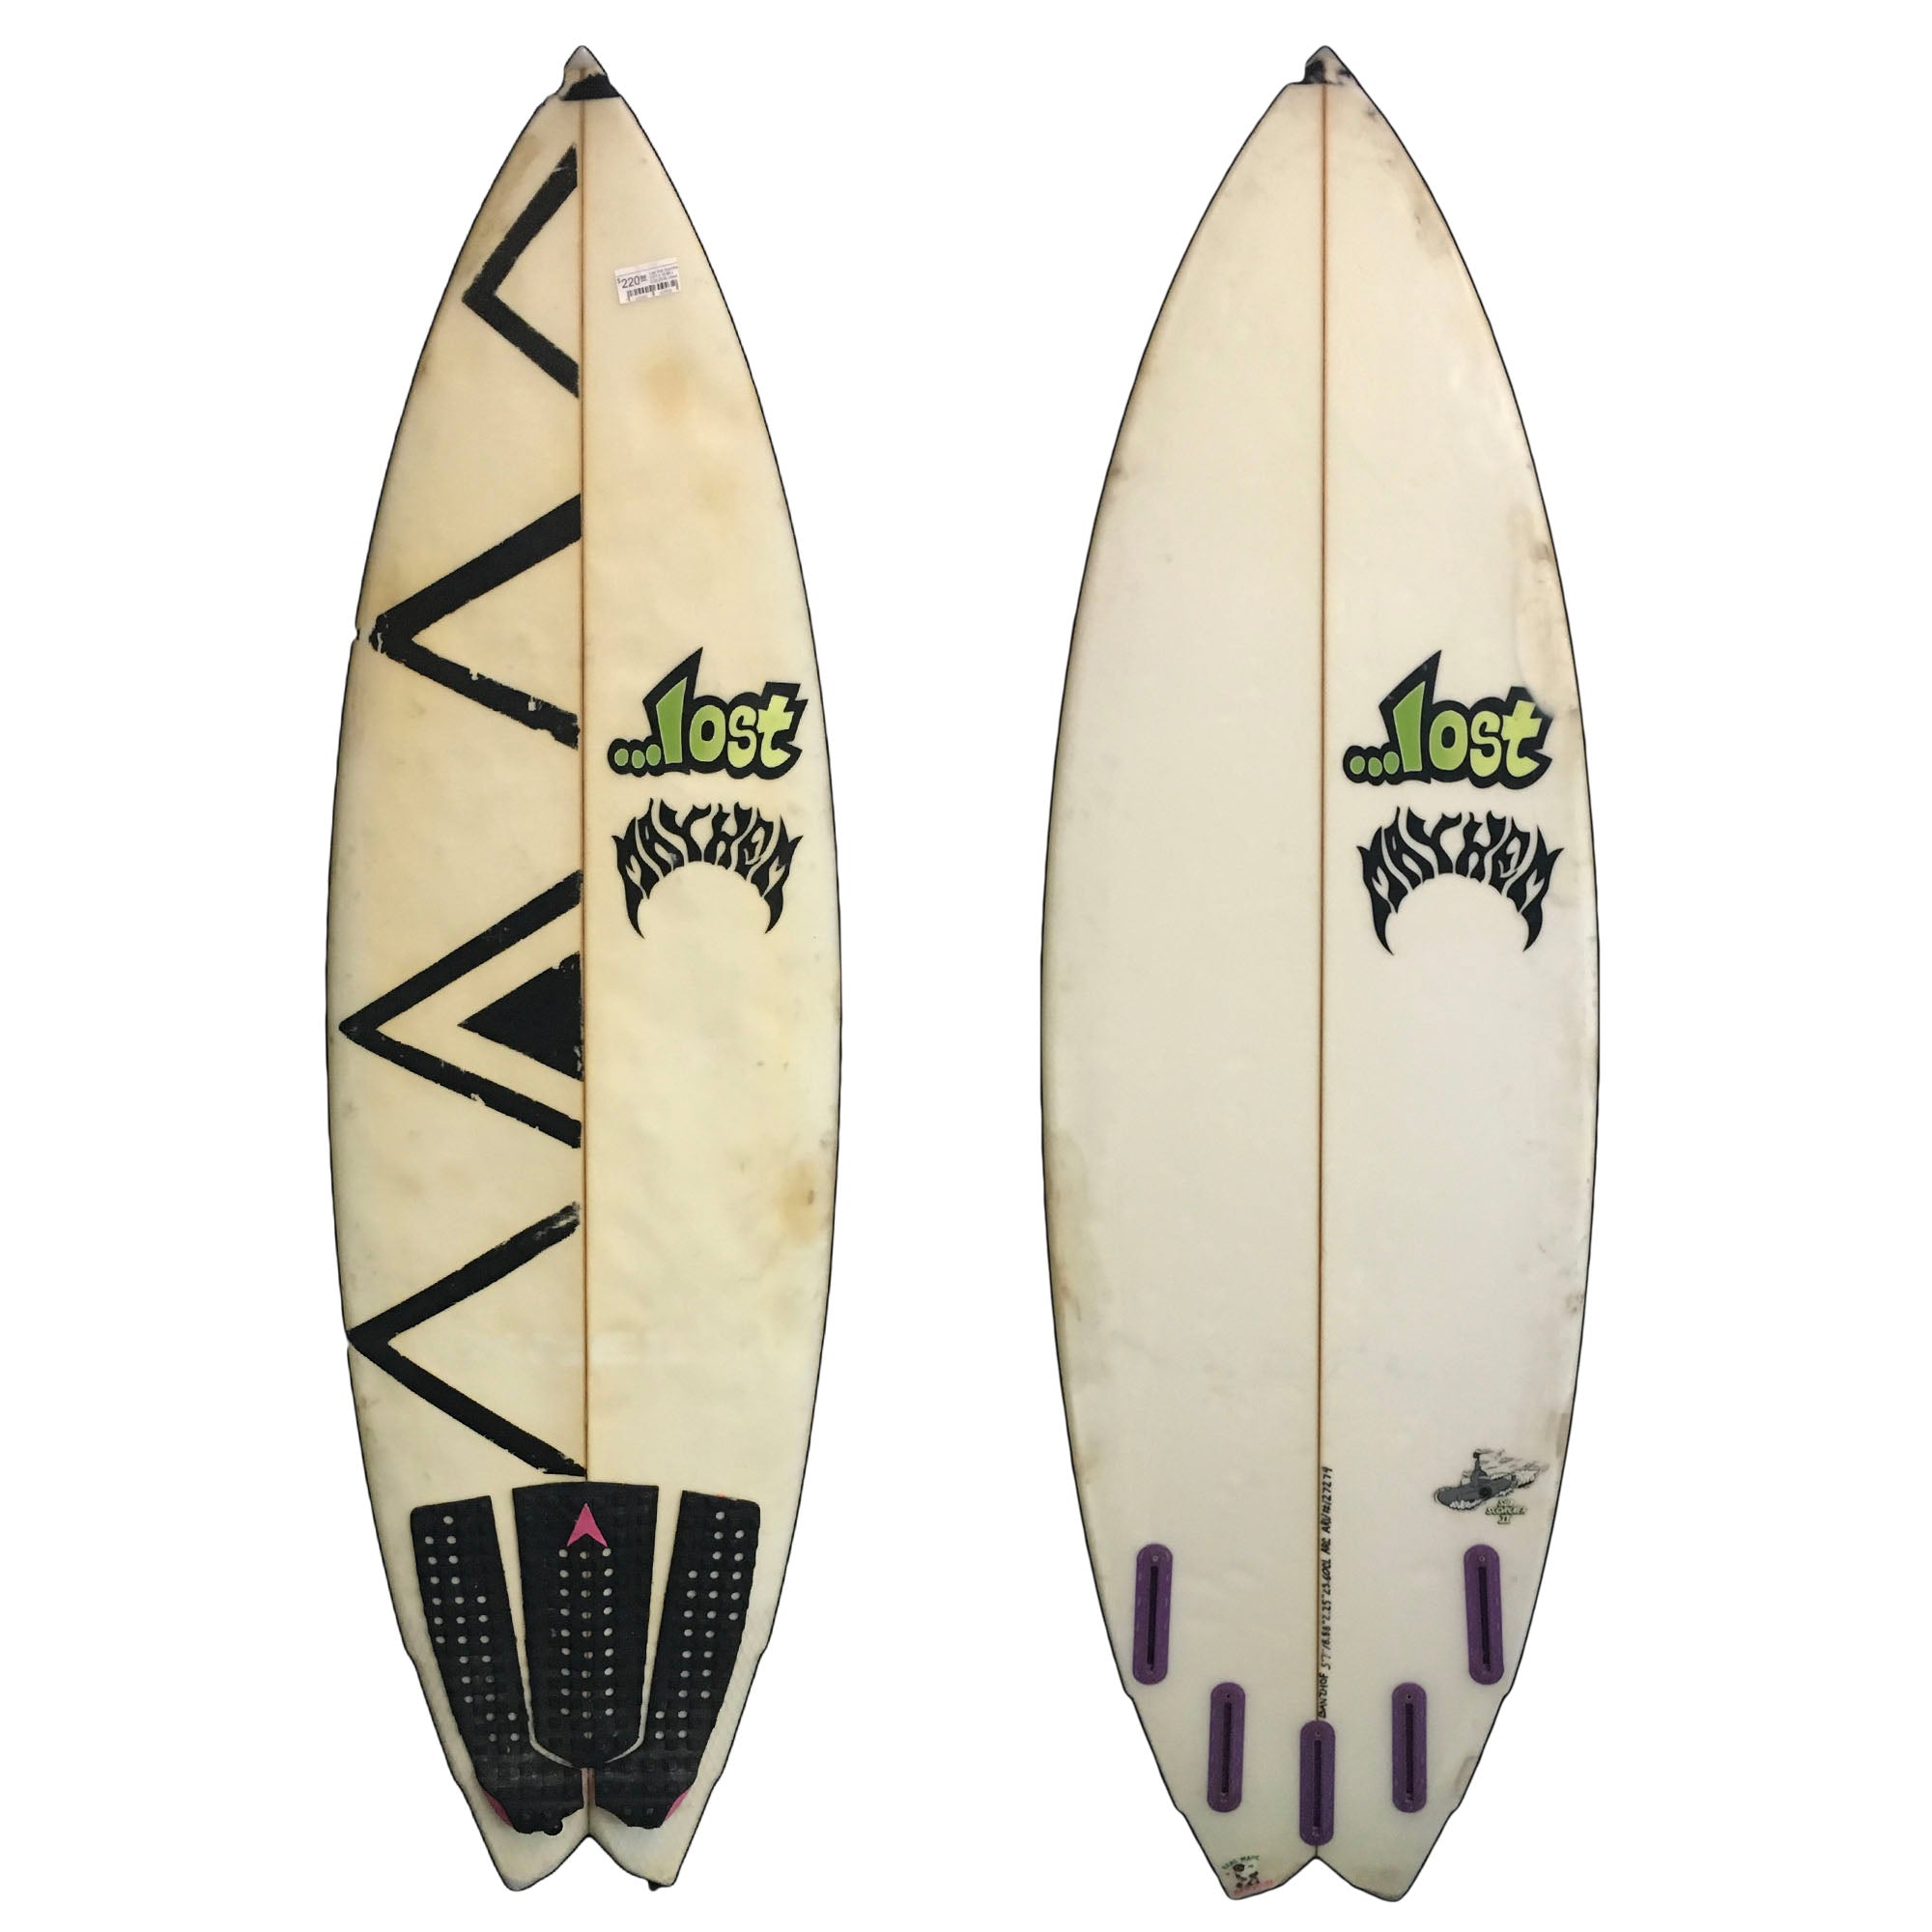 Lost Sub Scorcher 2 5'7 Used Surfboard